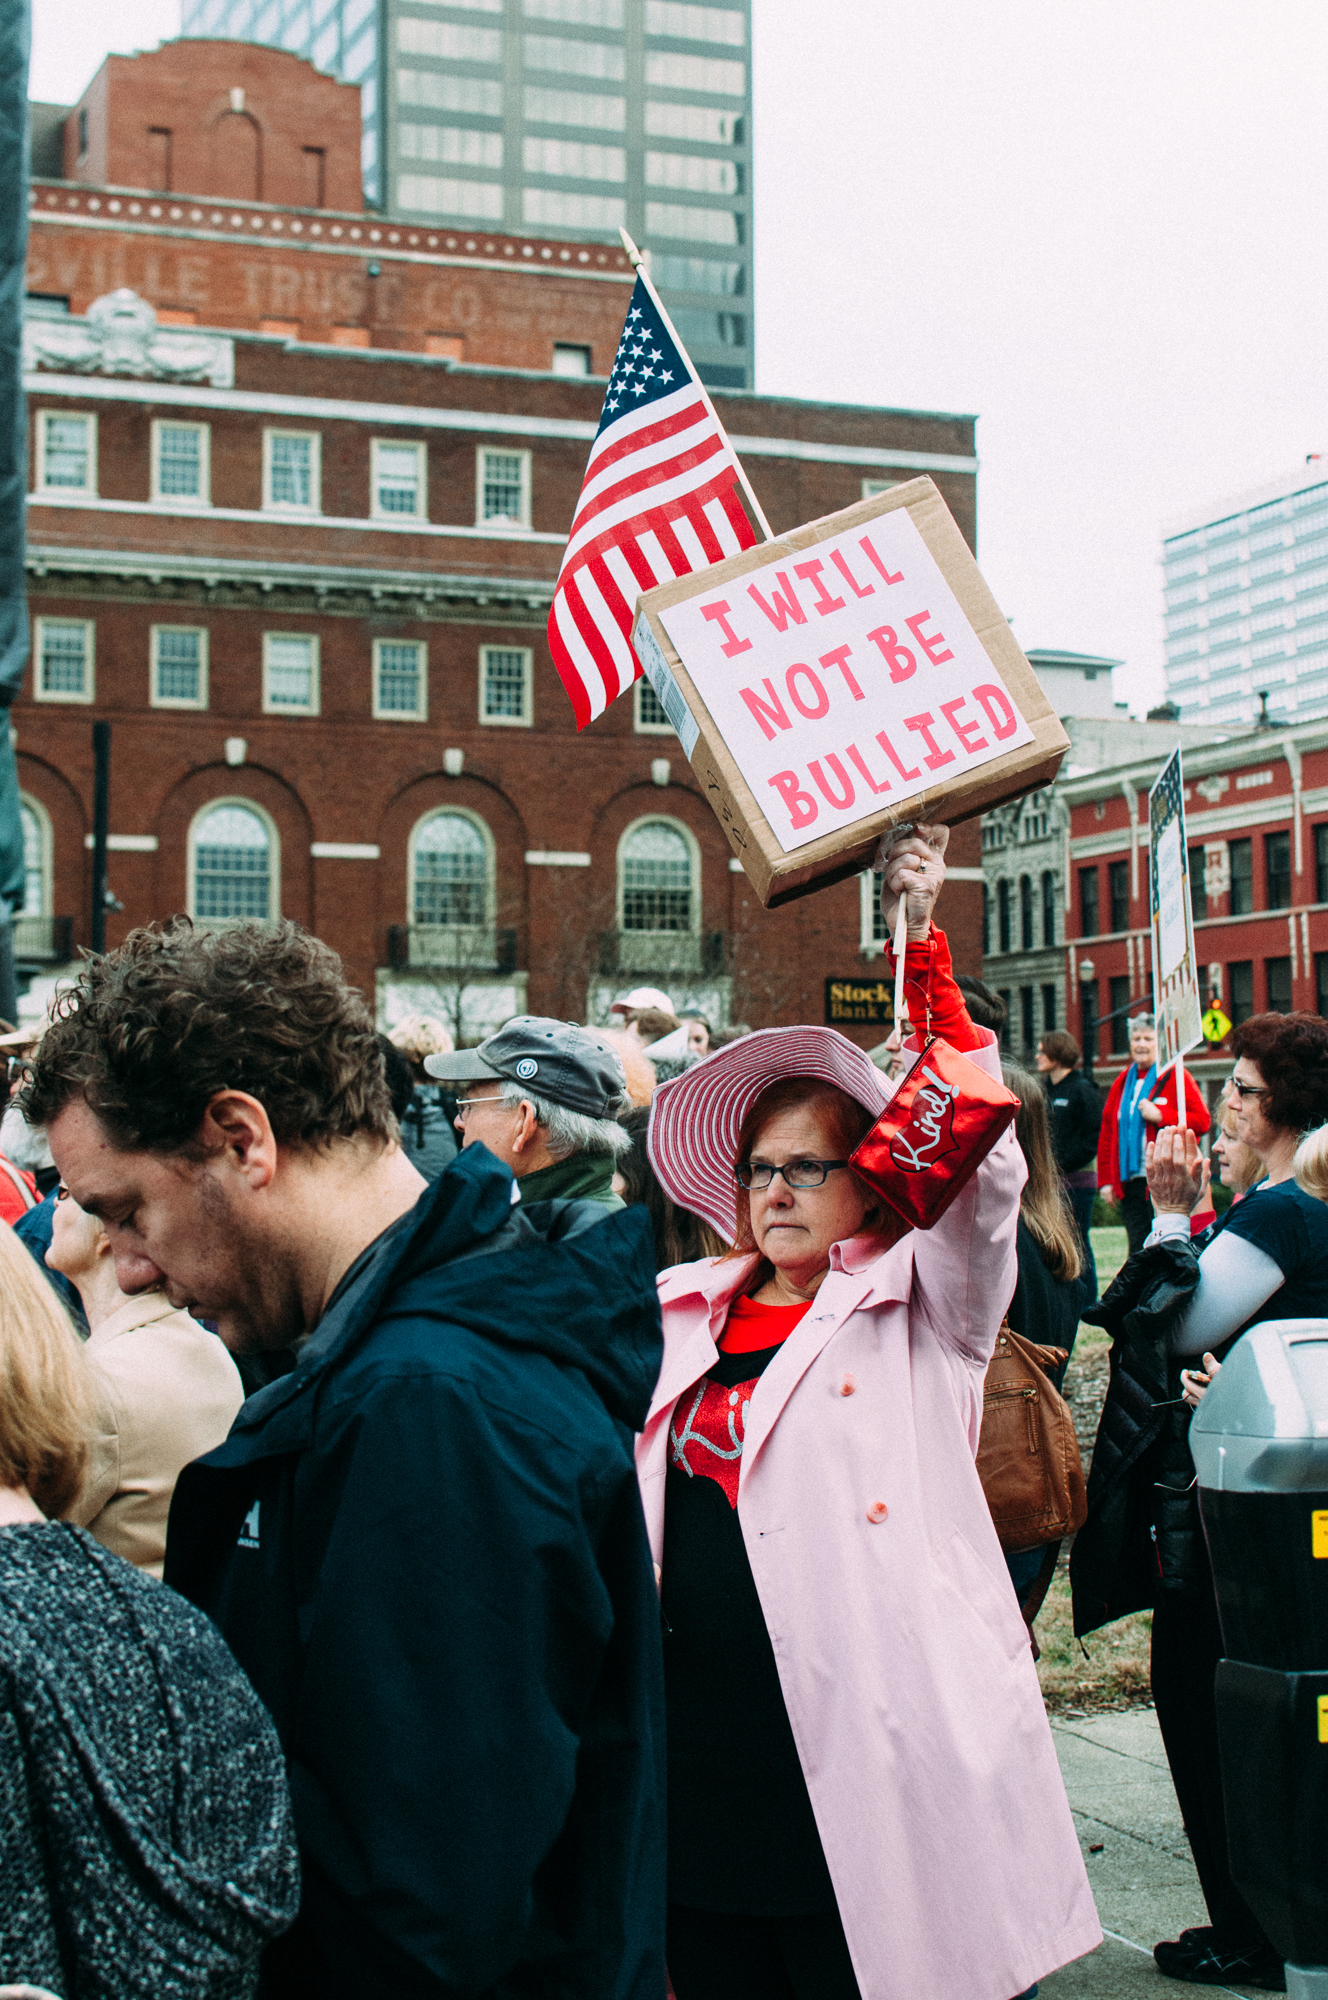 rally to move forward louisville protest trump-22.jpg